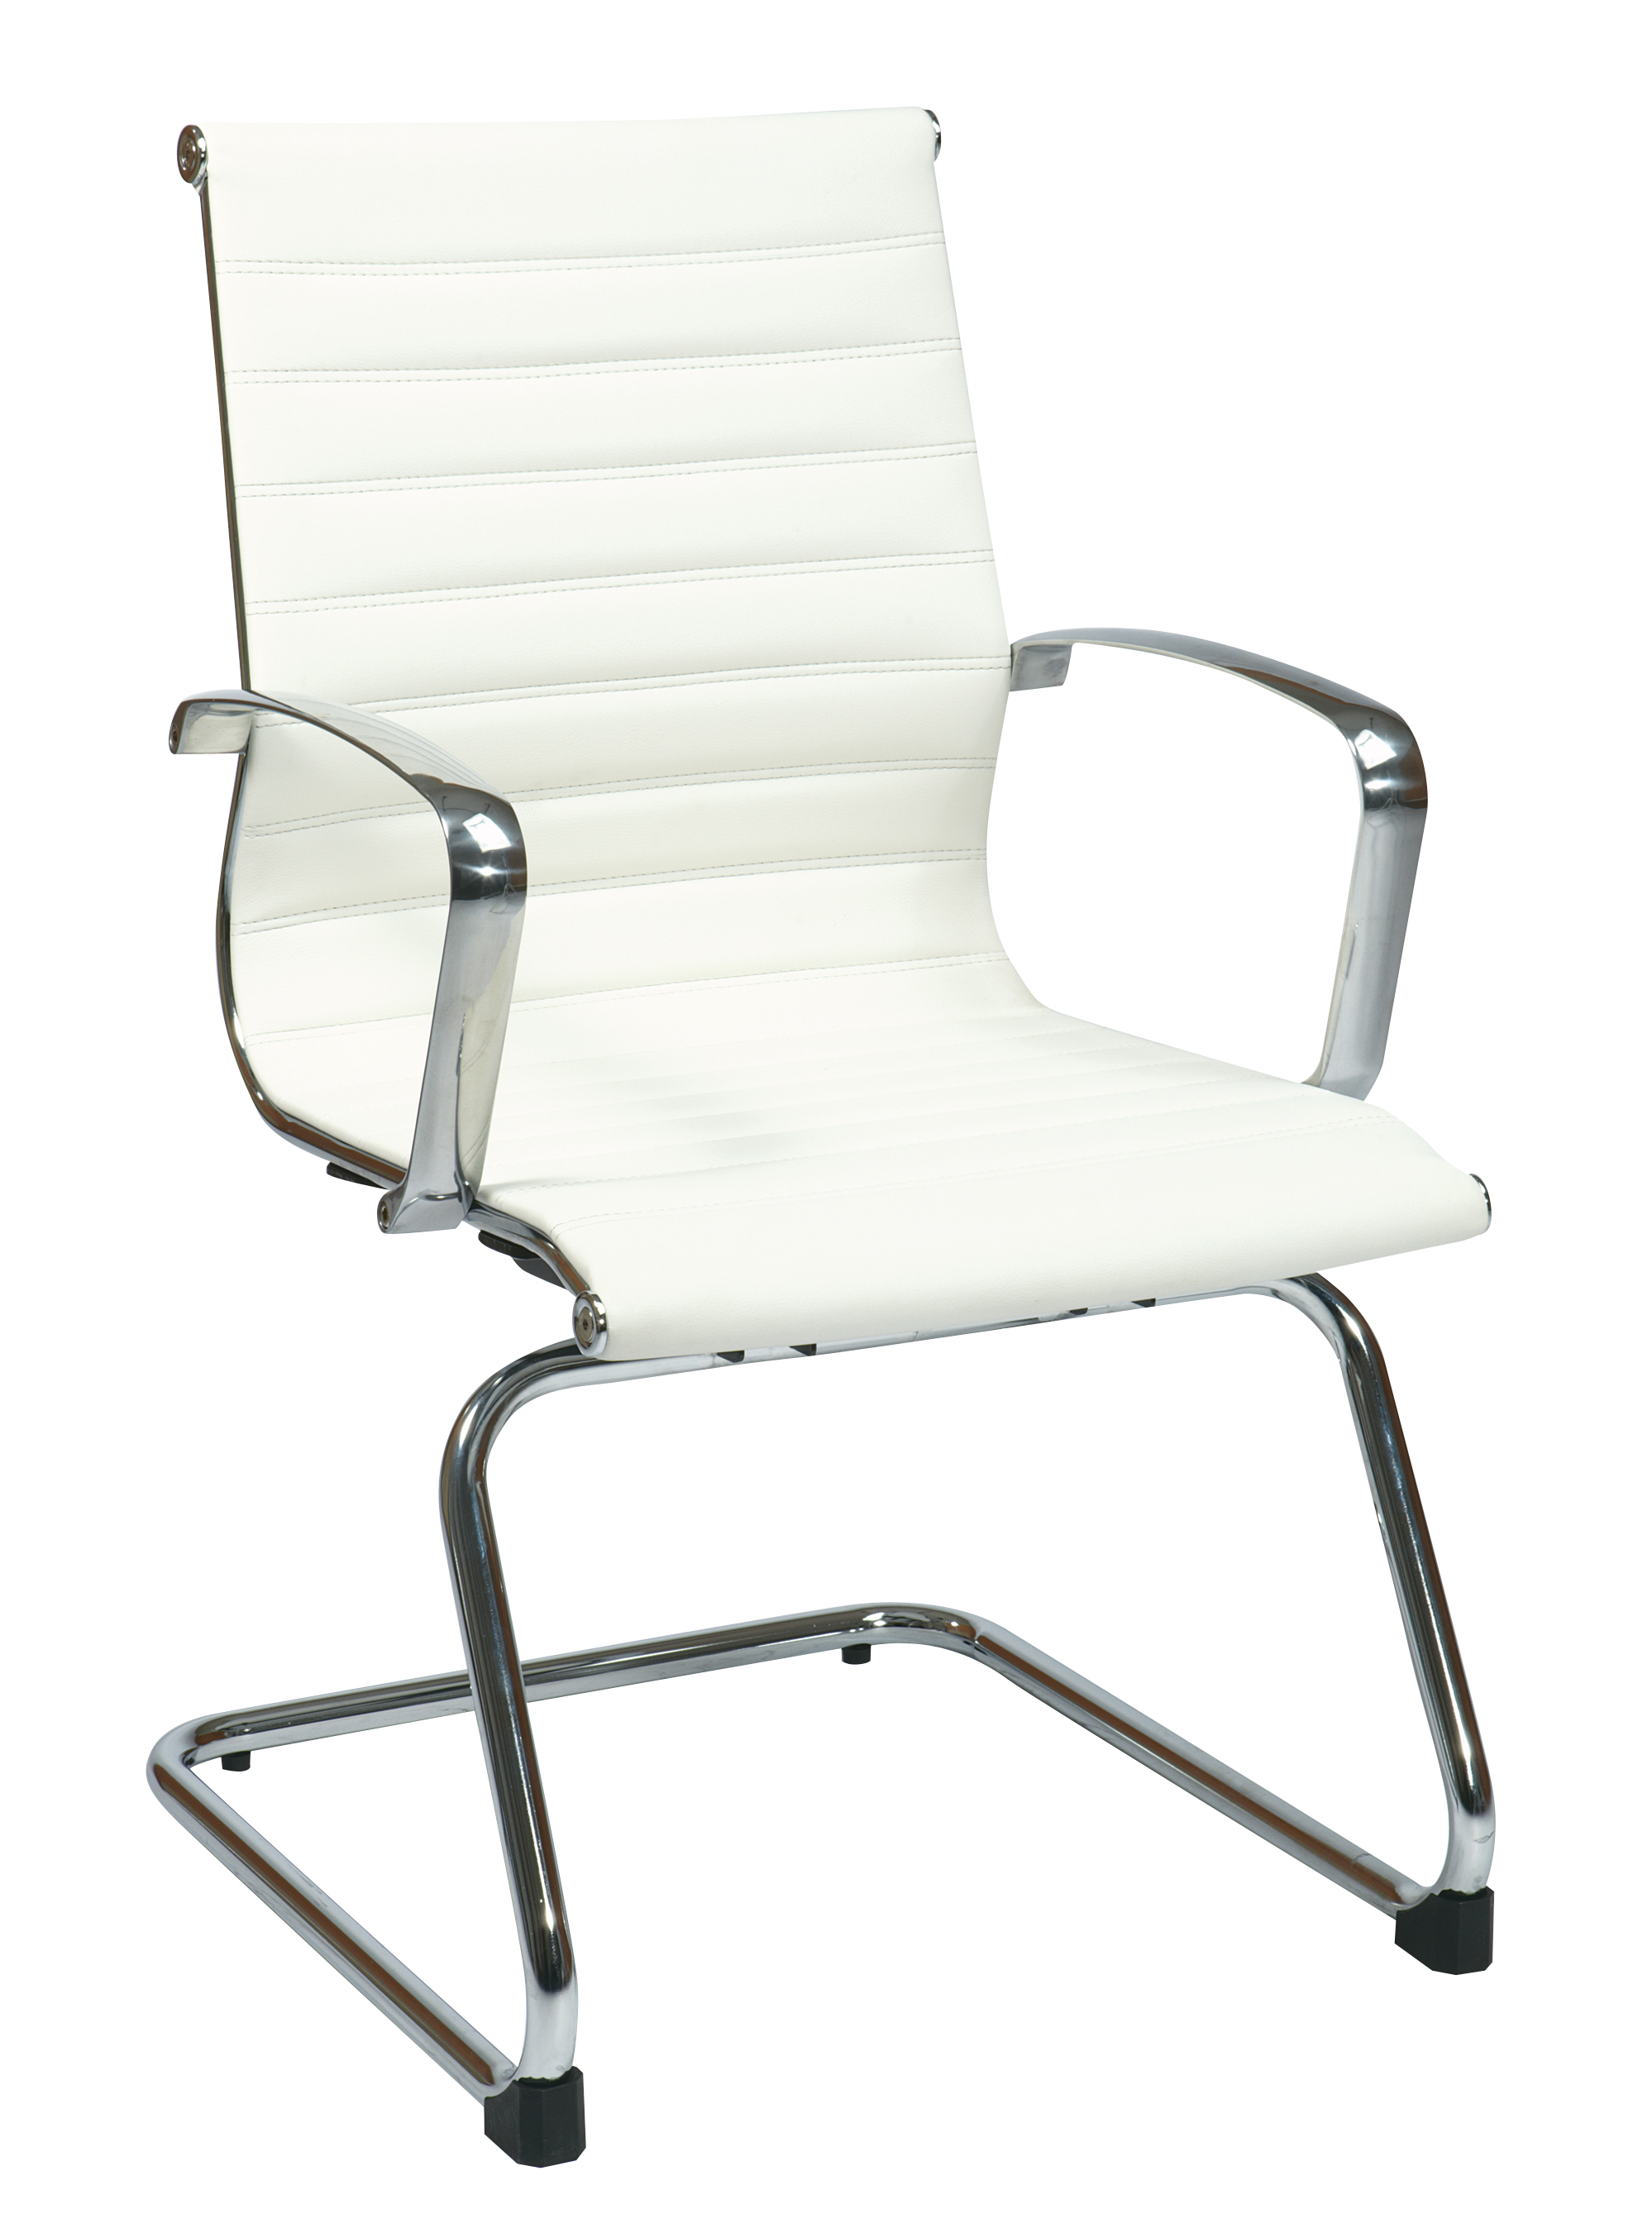 ergonomic visitor chair shower chairs for handicapped osp guest office furniture cubicles